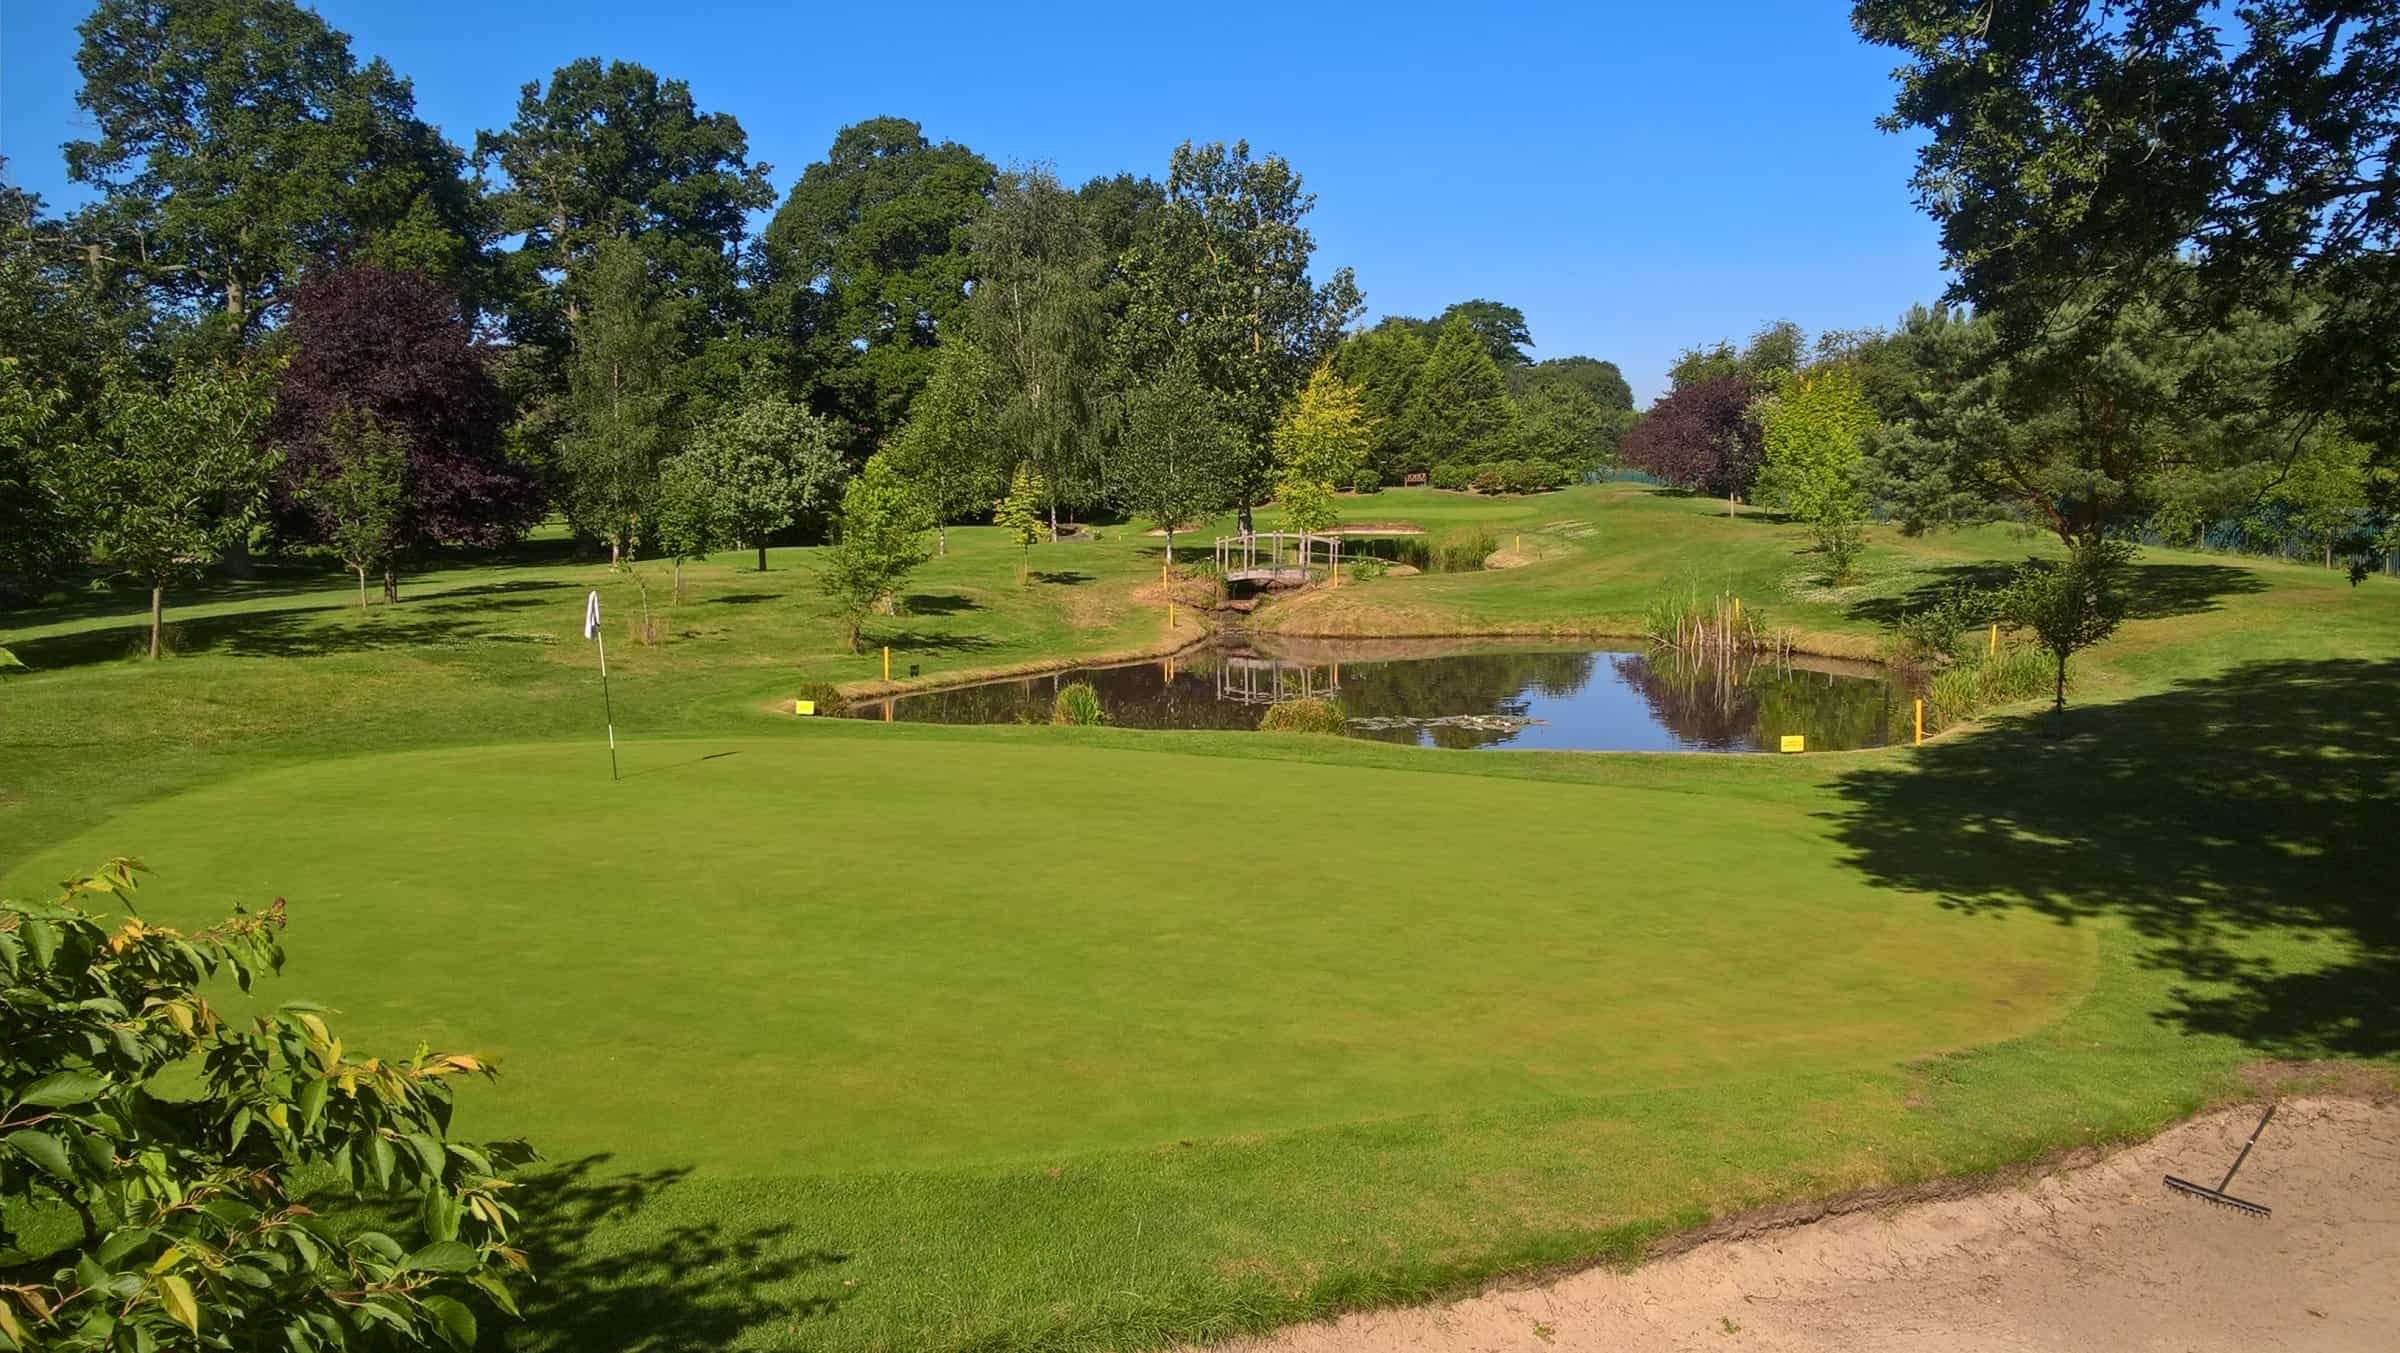 Fore King Golf Tour Par 3 Championship at Nailcote Hall 22 August 2020